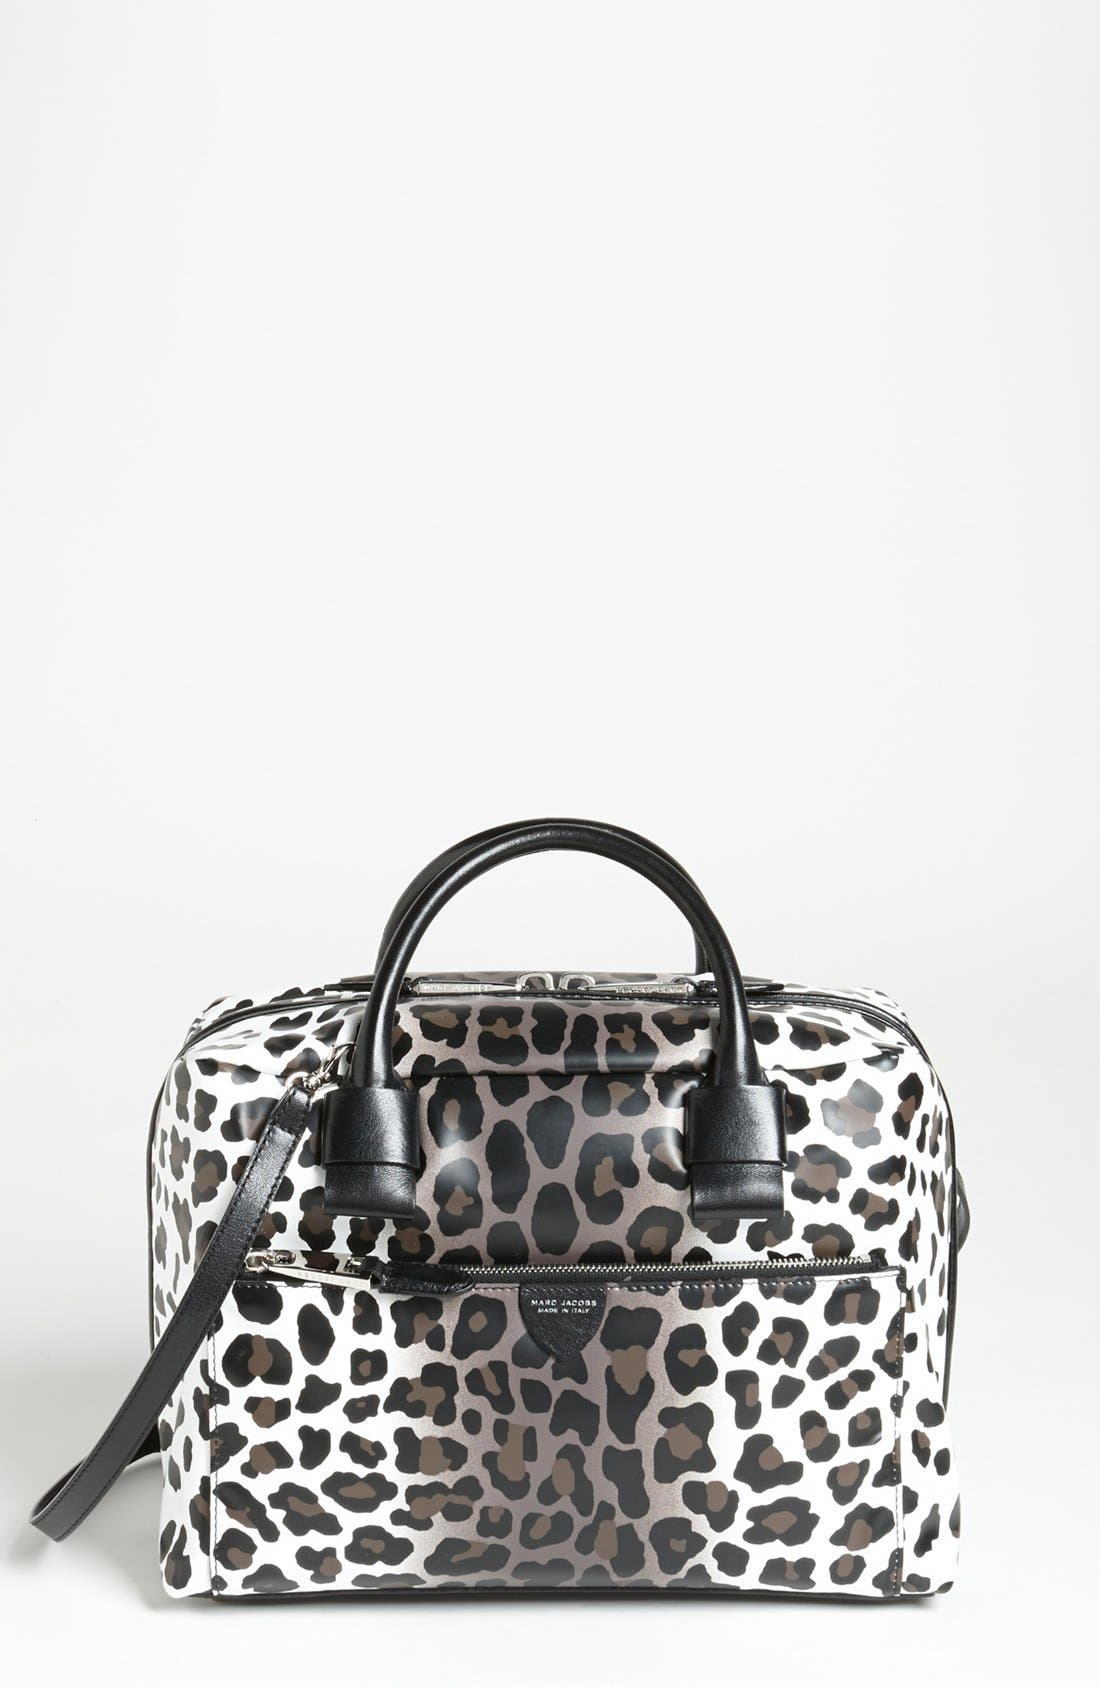 Alternate Image 1 Selected - MARC JACOBS 'Small Antonia - Leopard' Leather Satchel